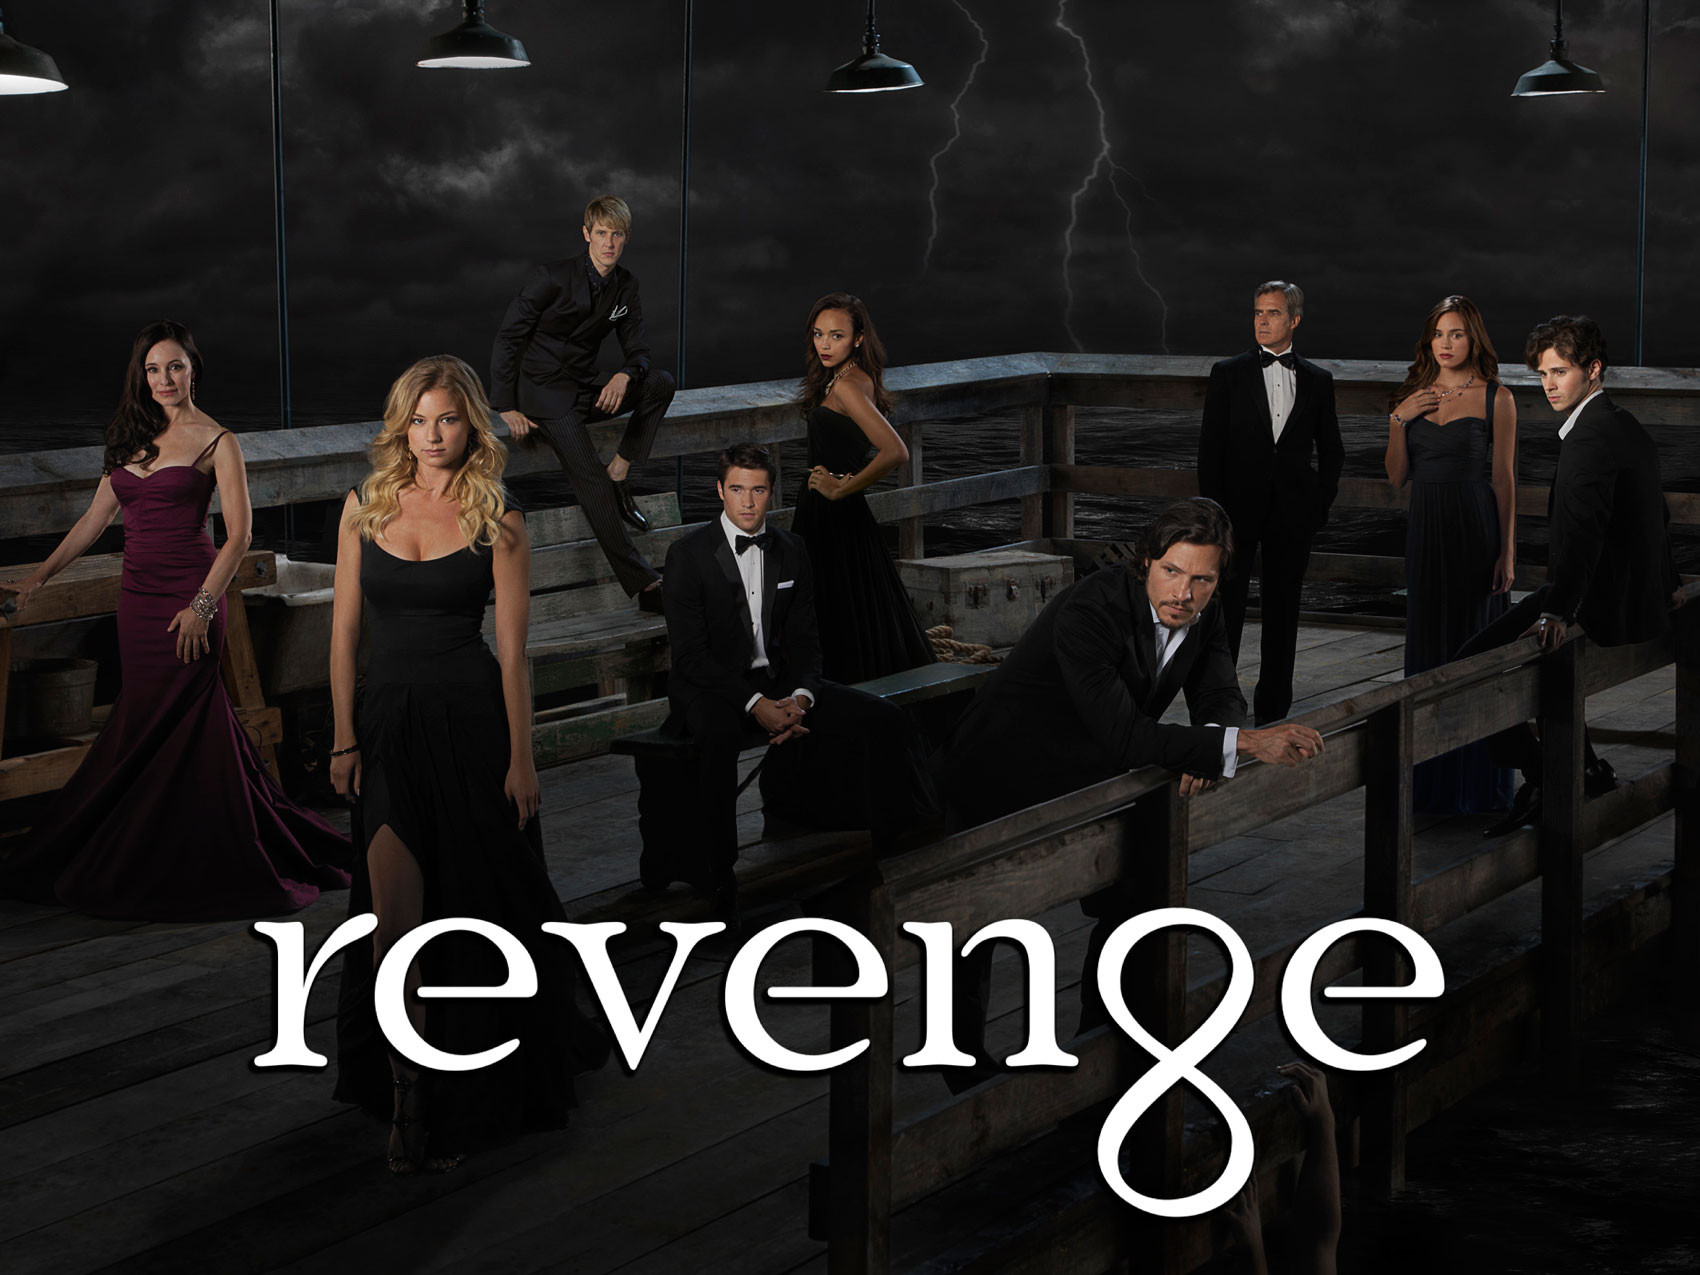 Revenge: Season 02 (2012) - | Cast and Crew | AllMovie